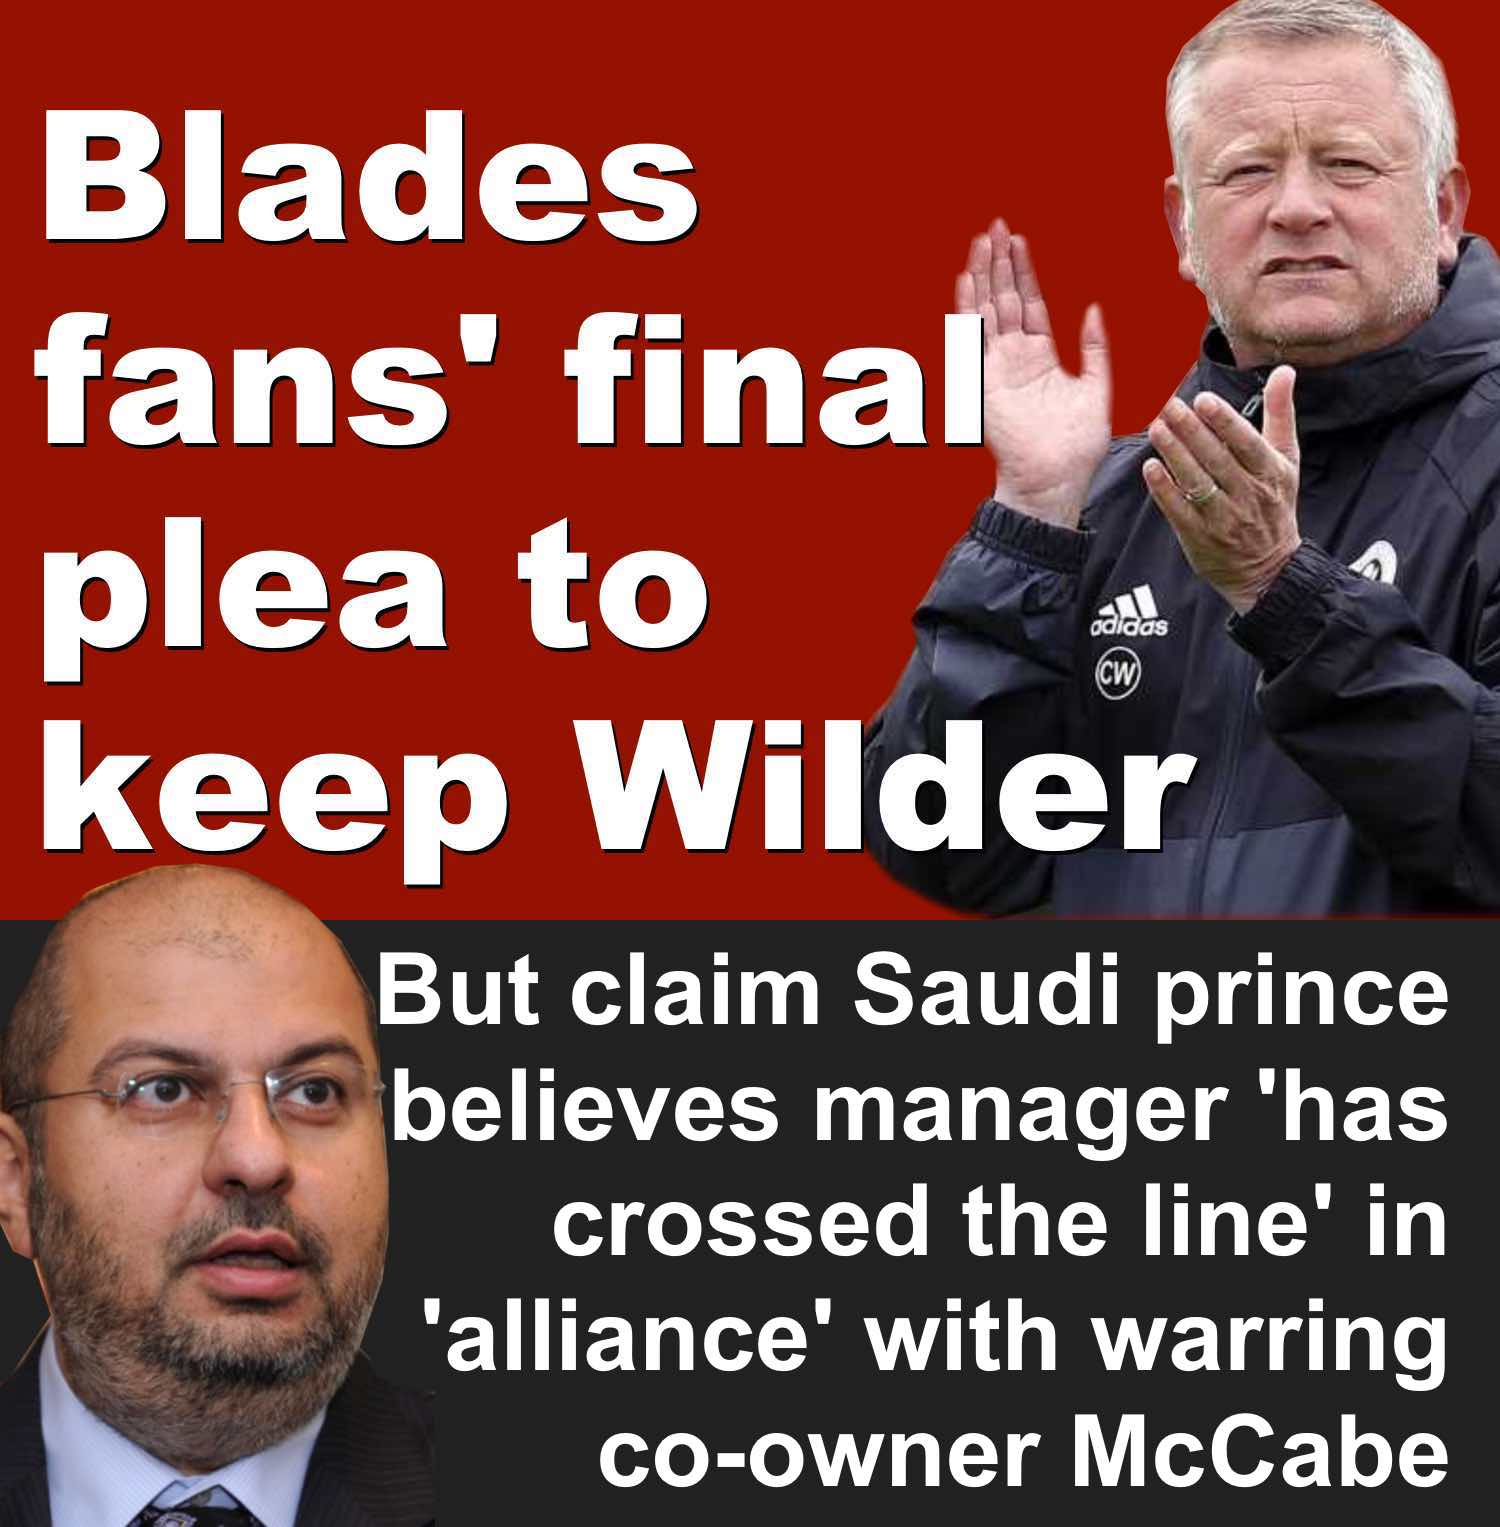 Claim  Sheffield United boss Chris Wilder is in alliance with Blades co-owner Kevin McCabe to topple Saudi partner Prince Abdullah at Bramall Lane